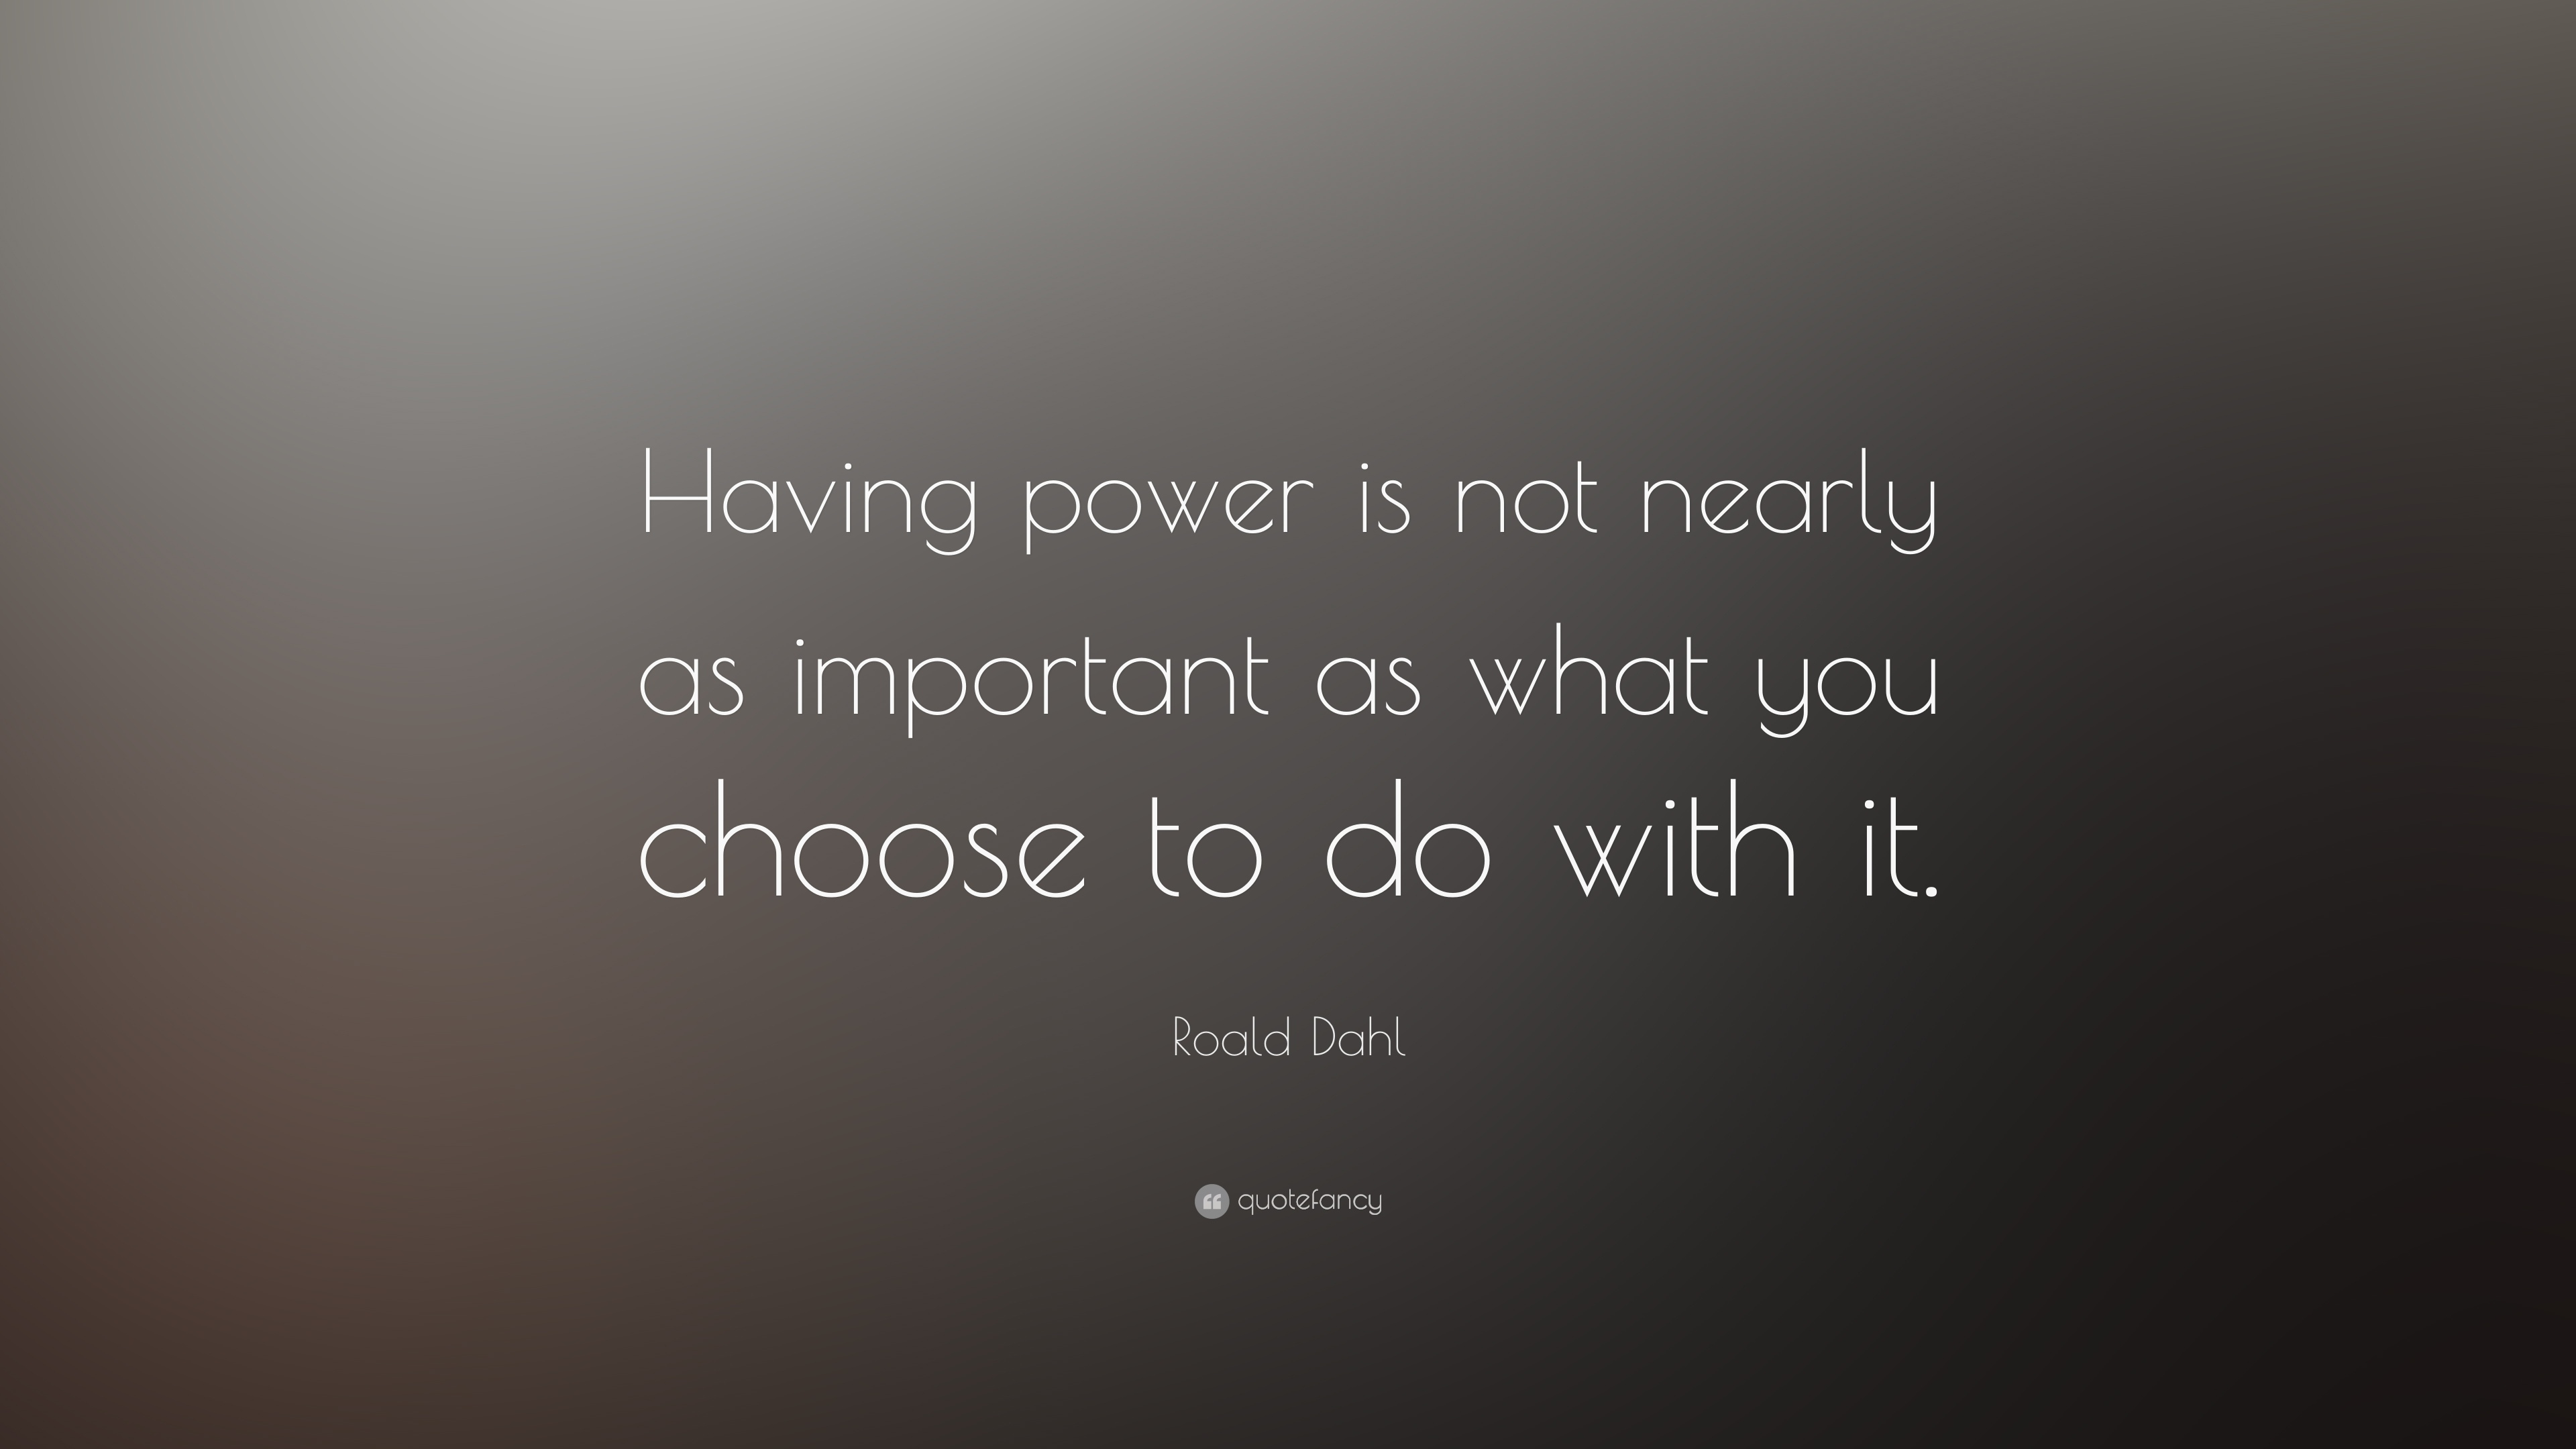 Quotes About Power Quotes About Power Captivating The Way To Have Power Is To Take It